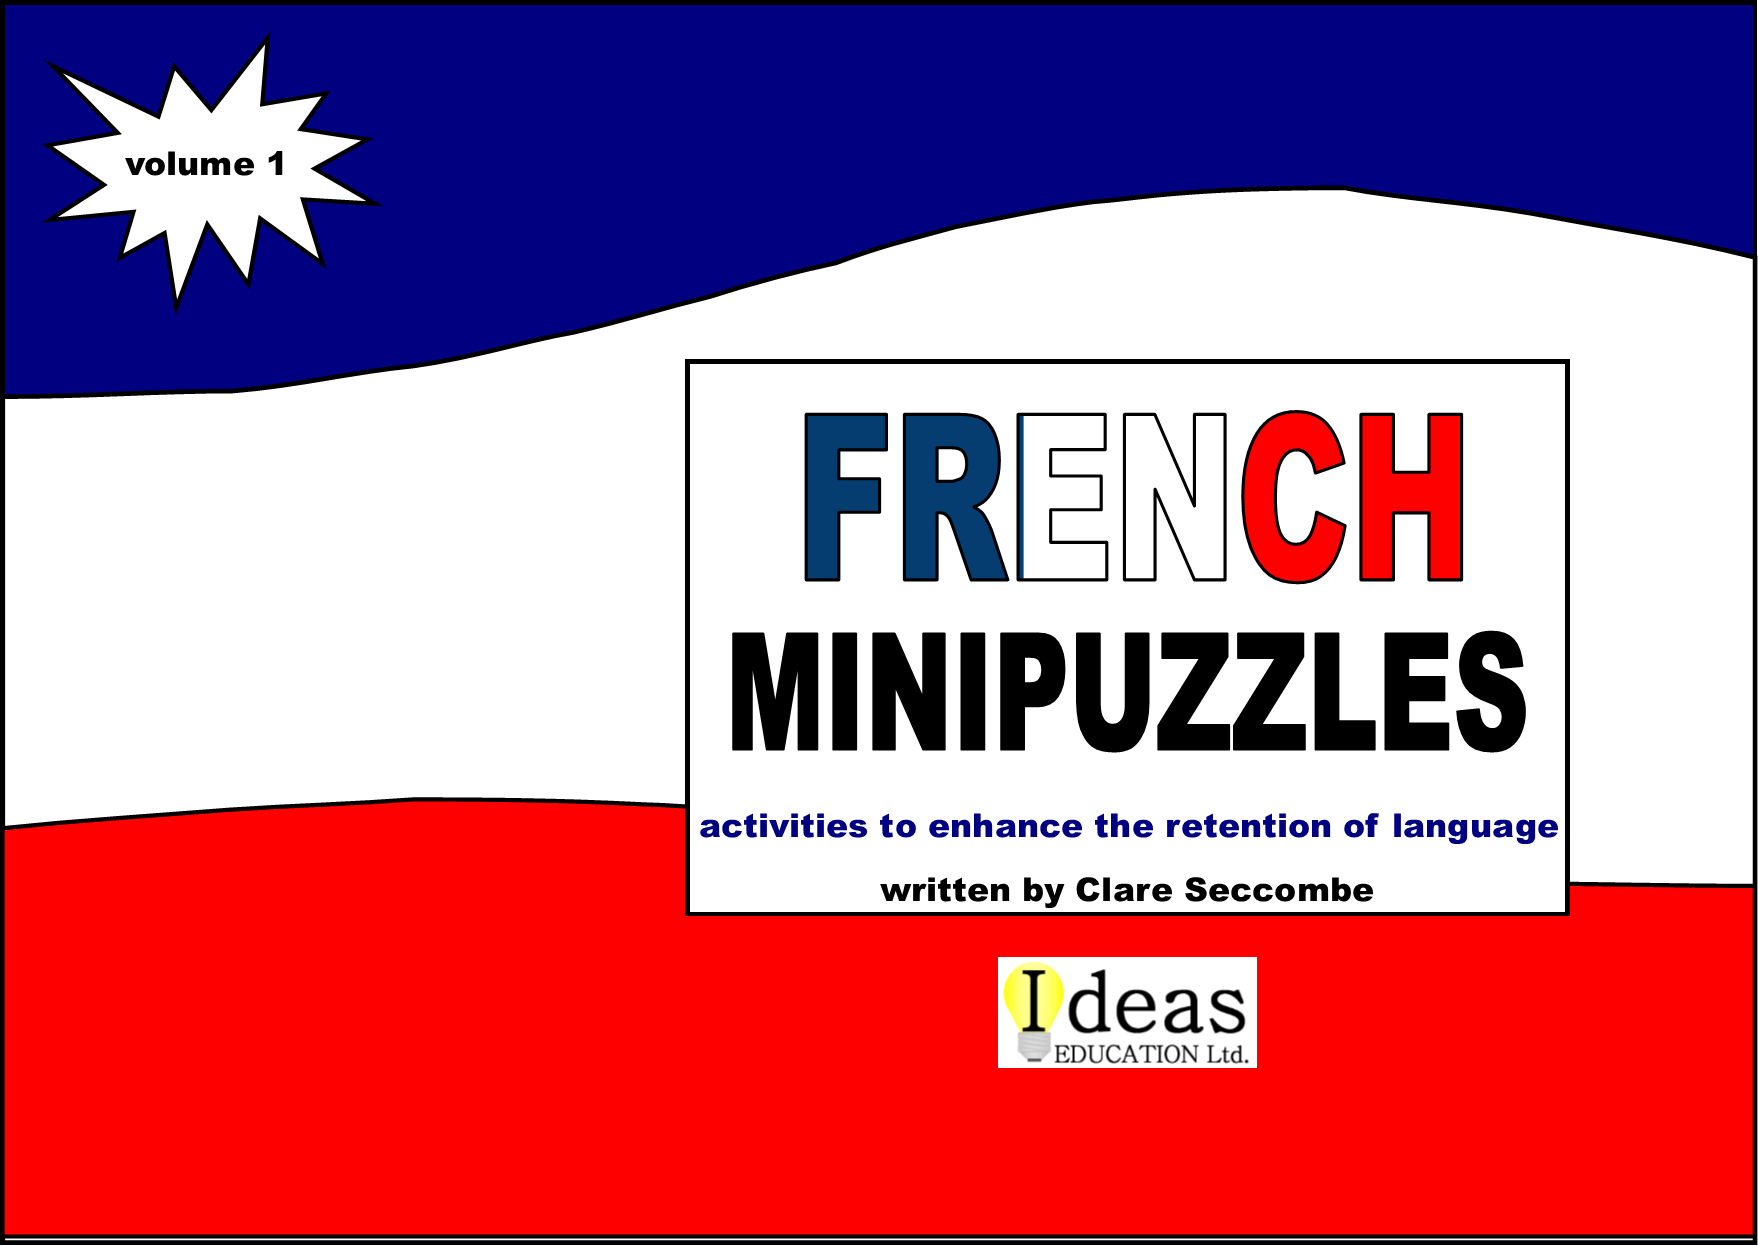 French Minipuzzles